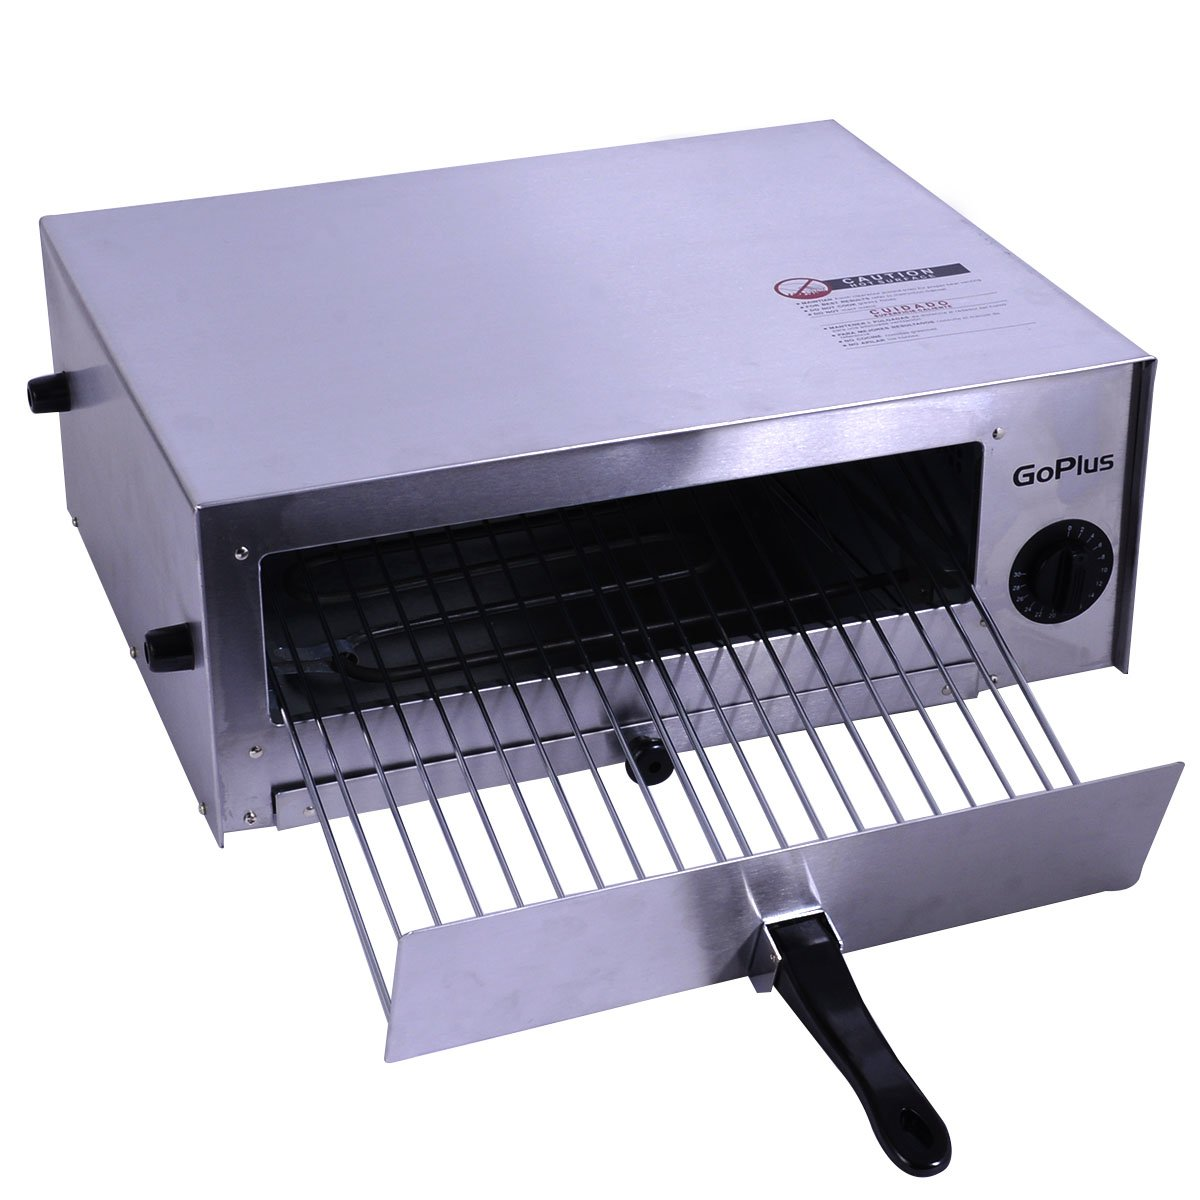 Amazon.com: Kitchen Commercial Pizza Oven Stainless Steel Counter ...